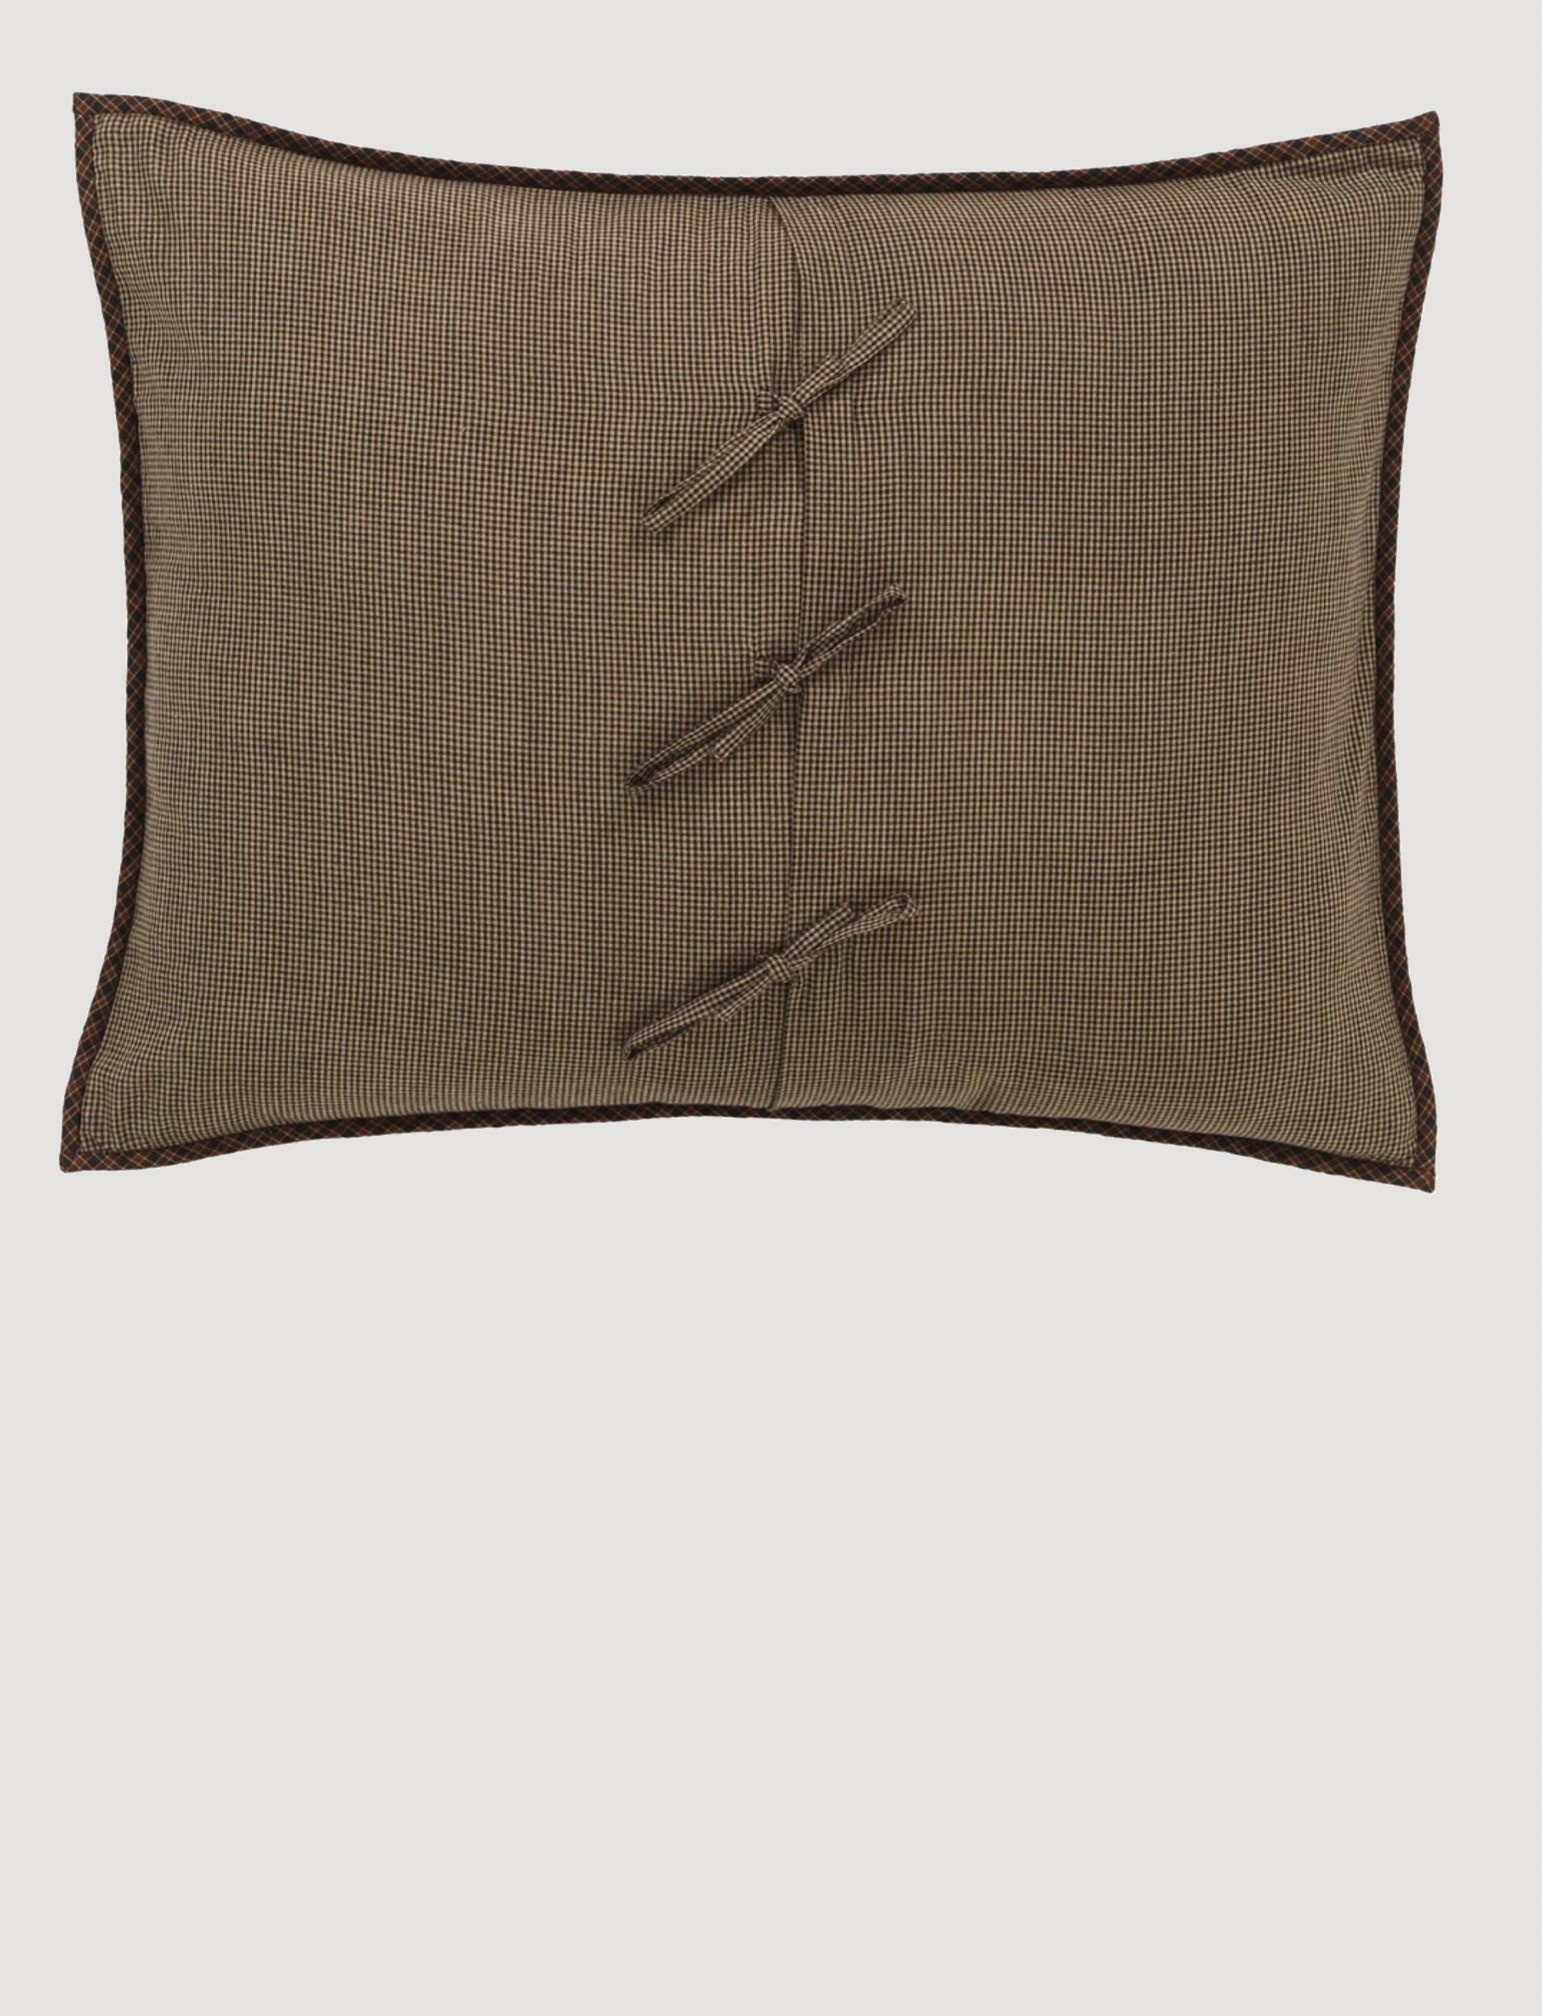 VHC Brands Heritage Farms Pillow Sham